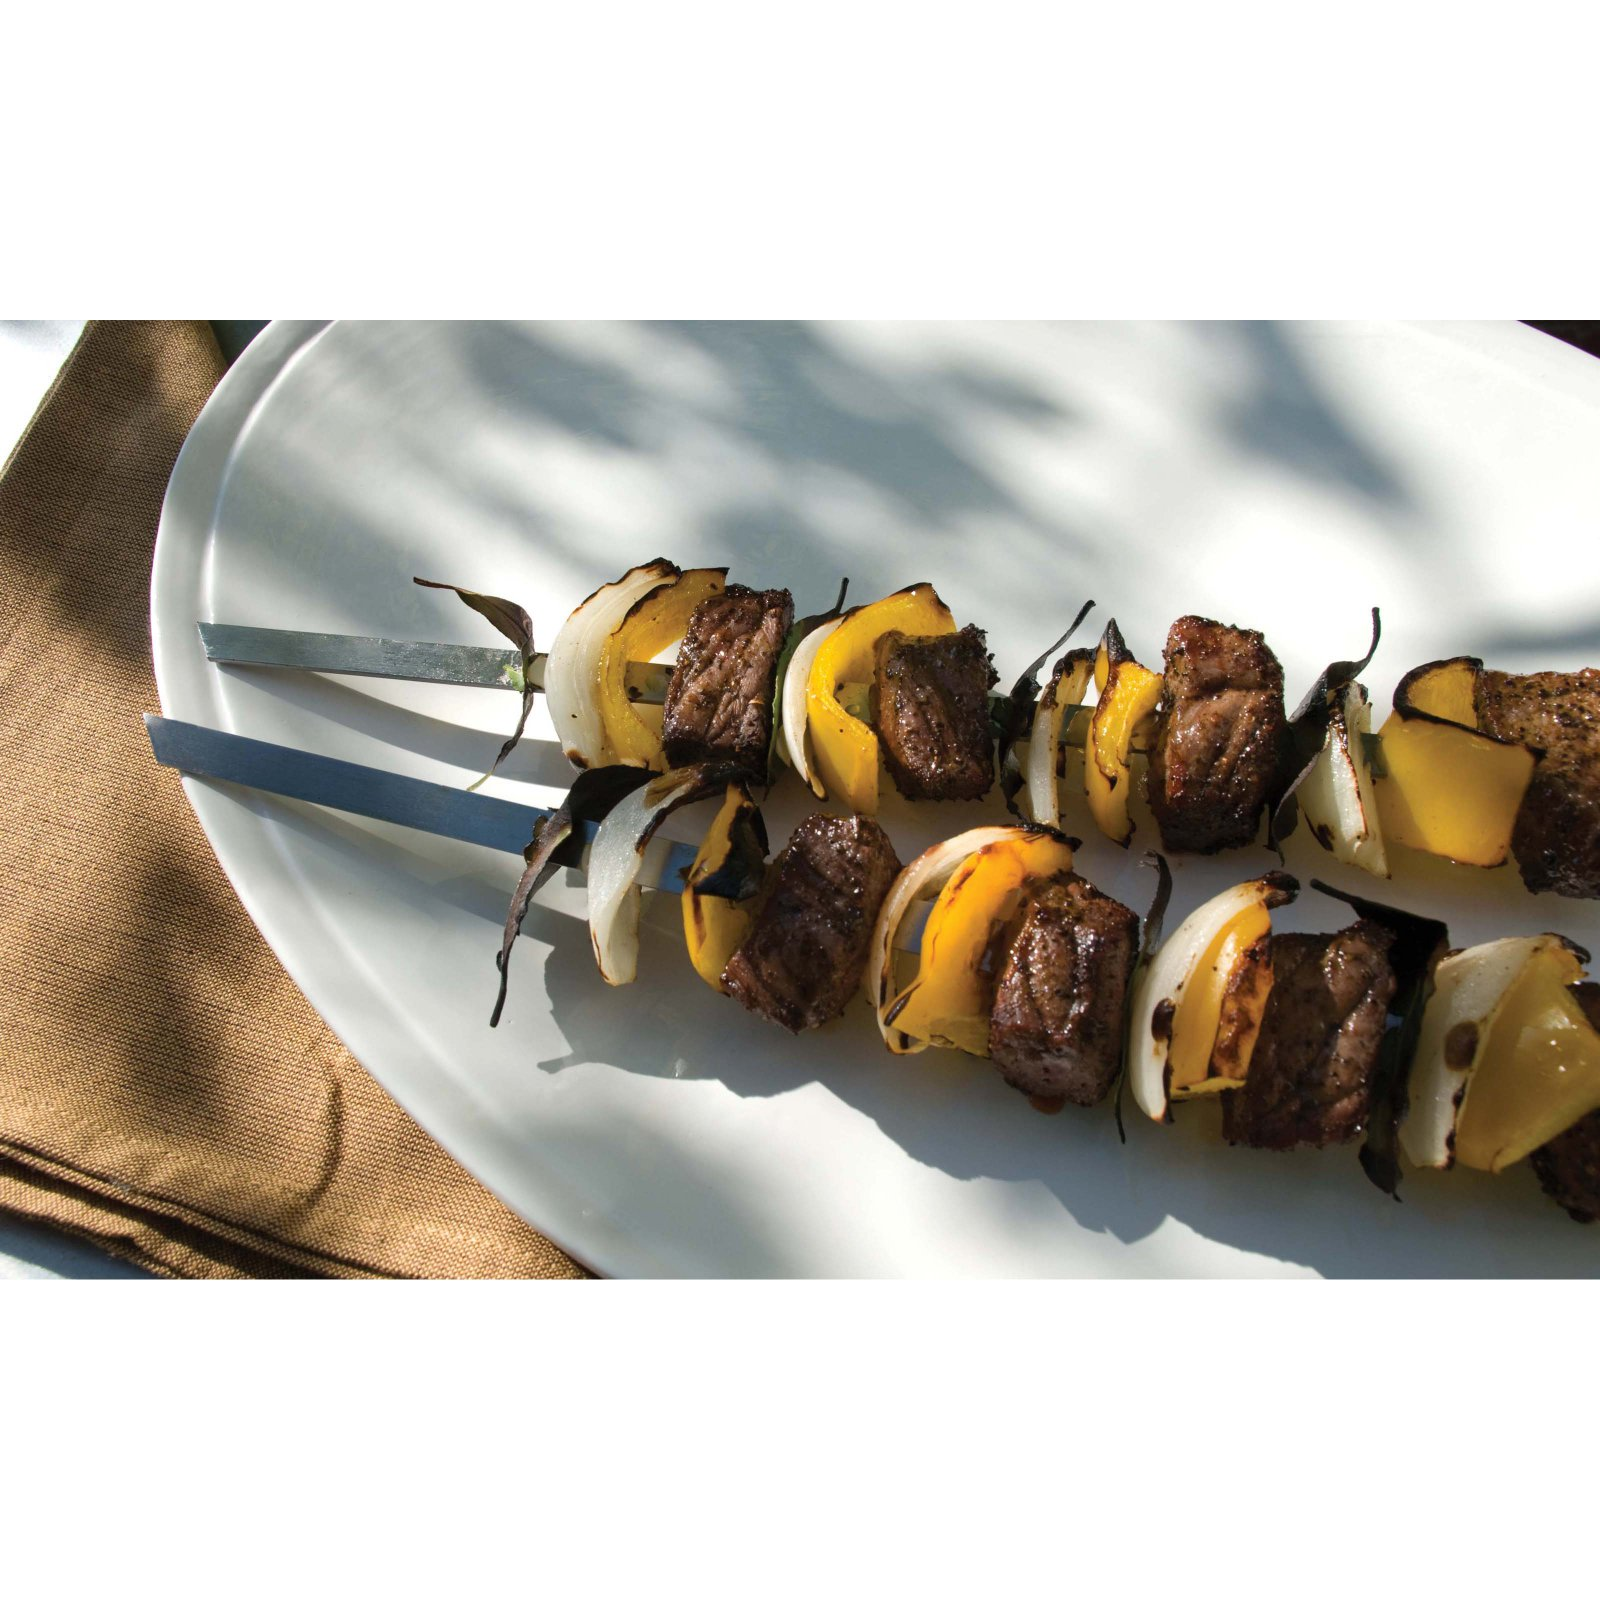 Steven Raichlen Best of Barbecue Signature Stainless Steel Grilling Kabob Skewers